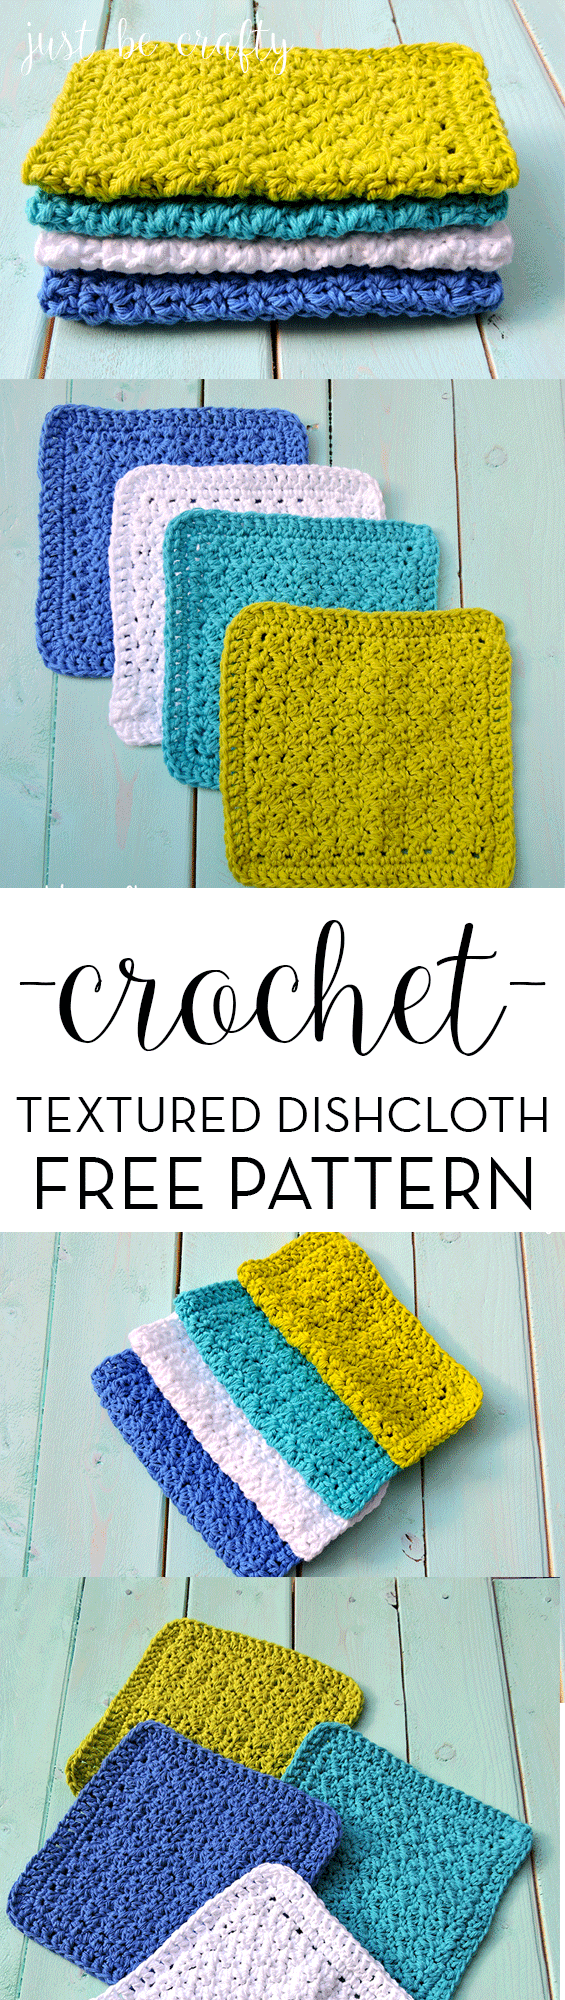 Crochet textured dishcloth pattern free pattern by free crochet textured dishcloth pattern free pattern by bankloansurffo Image collections